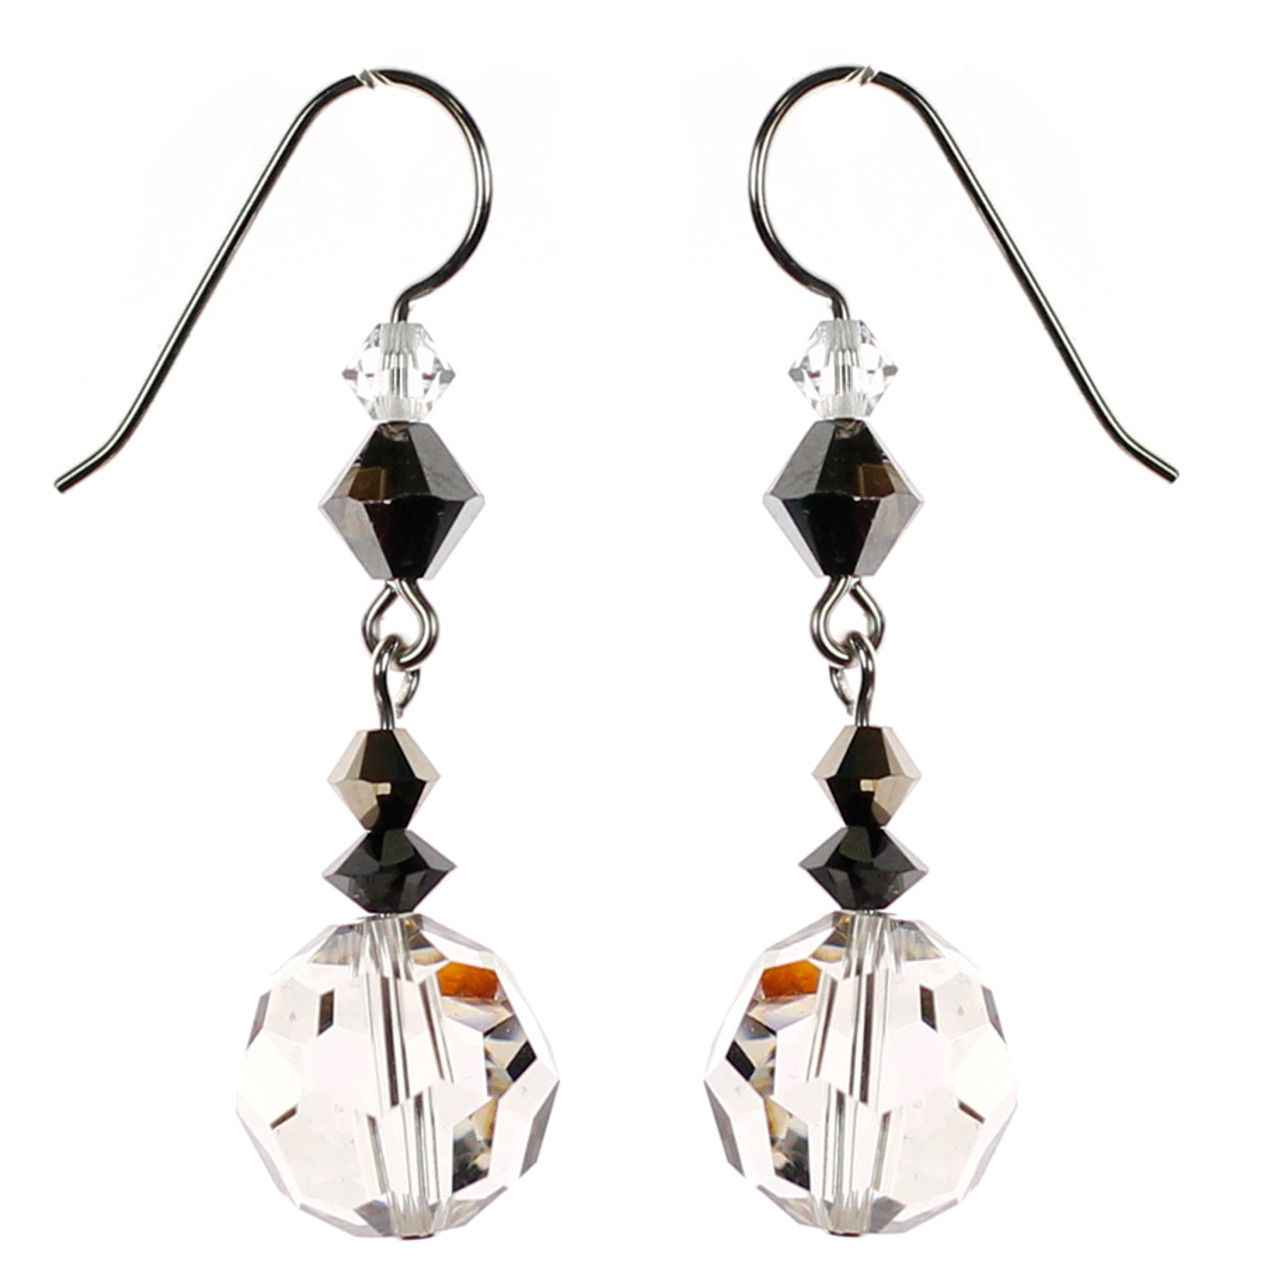 Formal Event Earrings Swarovski Crystal Moonlight Earrings Karen